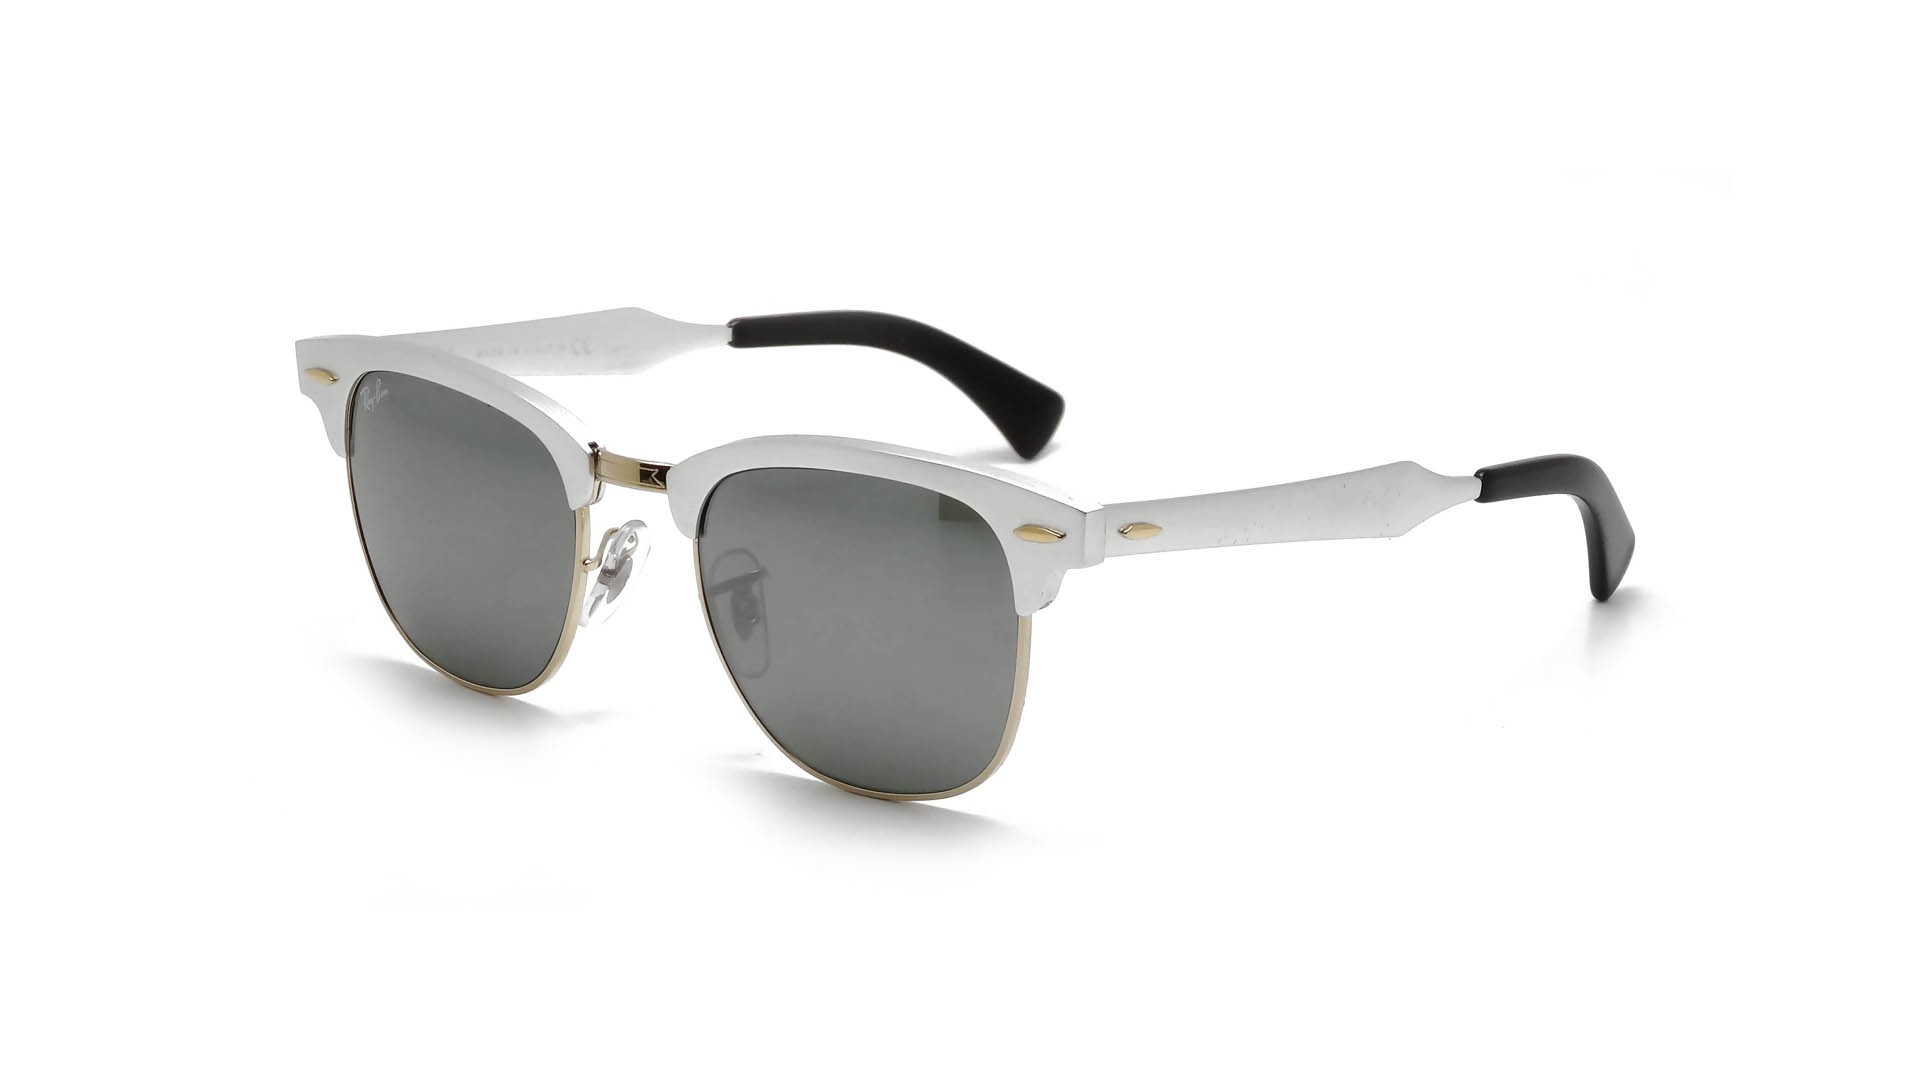 994b3bfedd8 Sunglasses Ray-Ban Clubmaster Aluminium Silver RB3507 137 40 49-21 Medium  Gradient Mirror